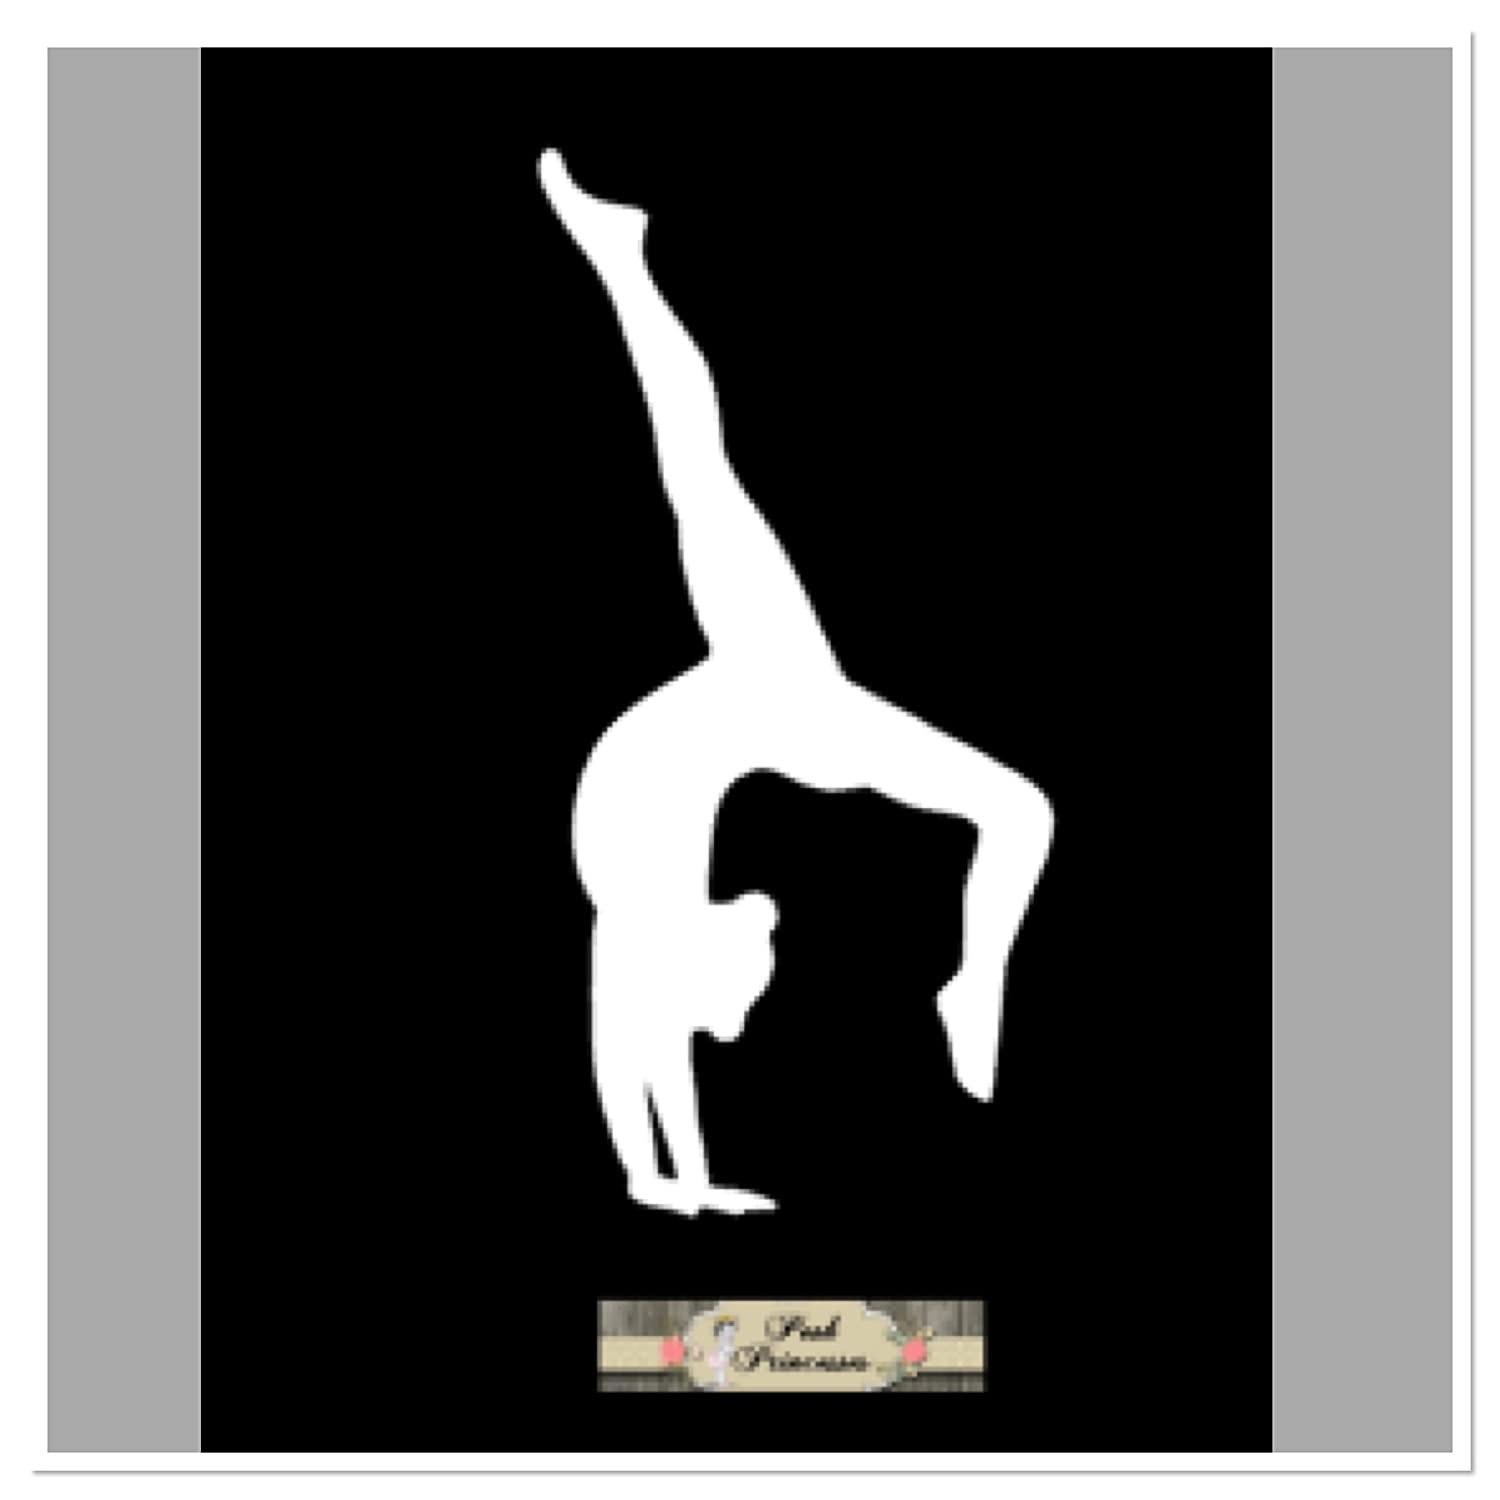 Gymnastic Decal Car Window Decal Laptop Sticker, Backbend Walkover, Handstand Decal White 4 x 2